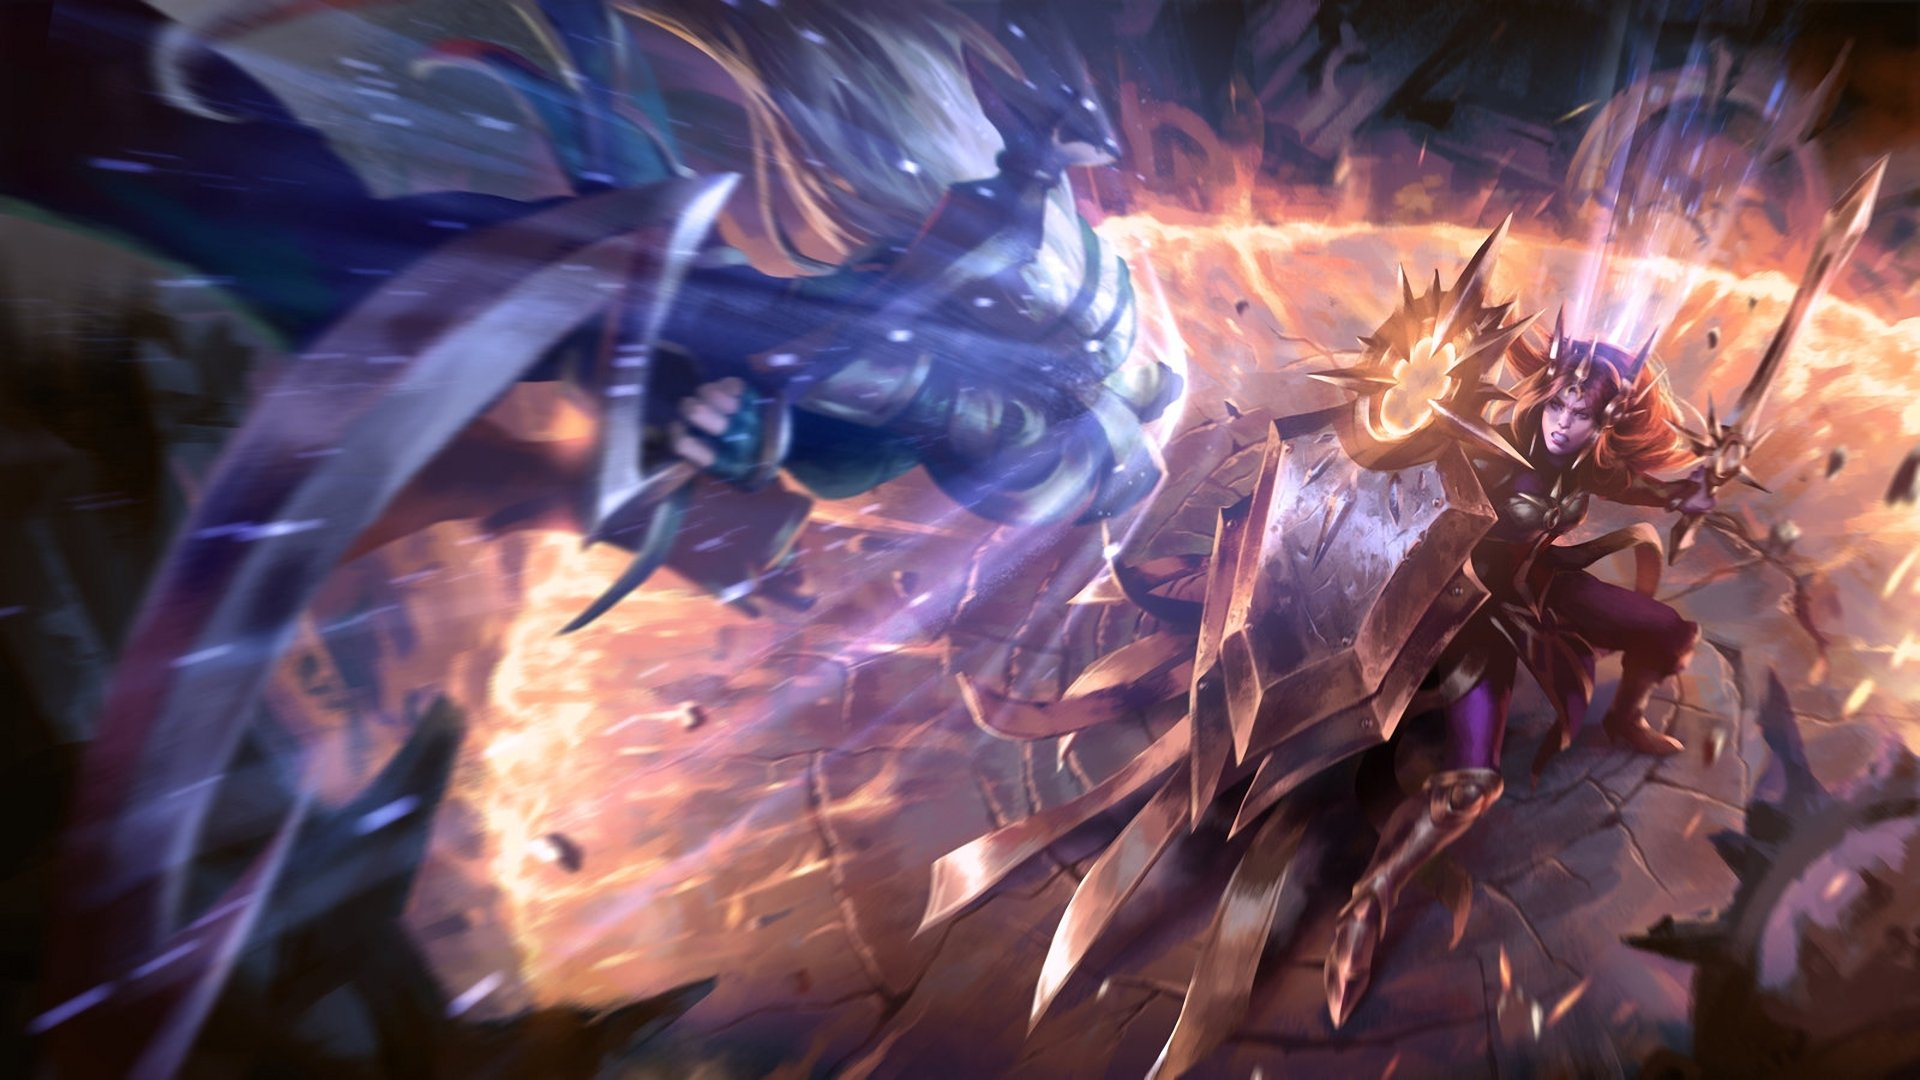 League Of Legends Hd Wallpaper Hintergrund 1920x1080 Id602045